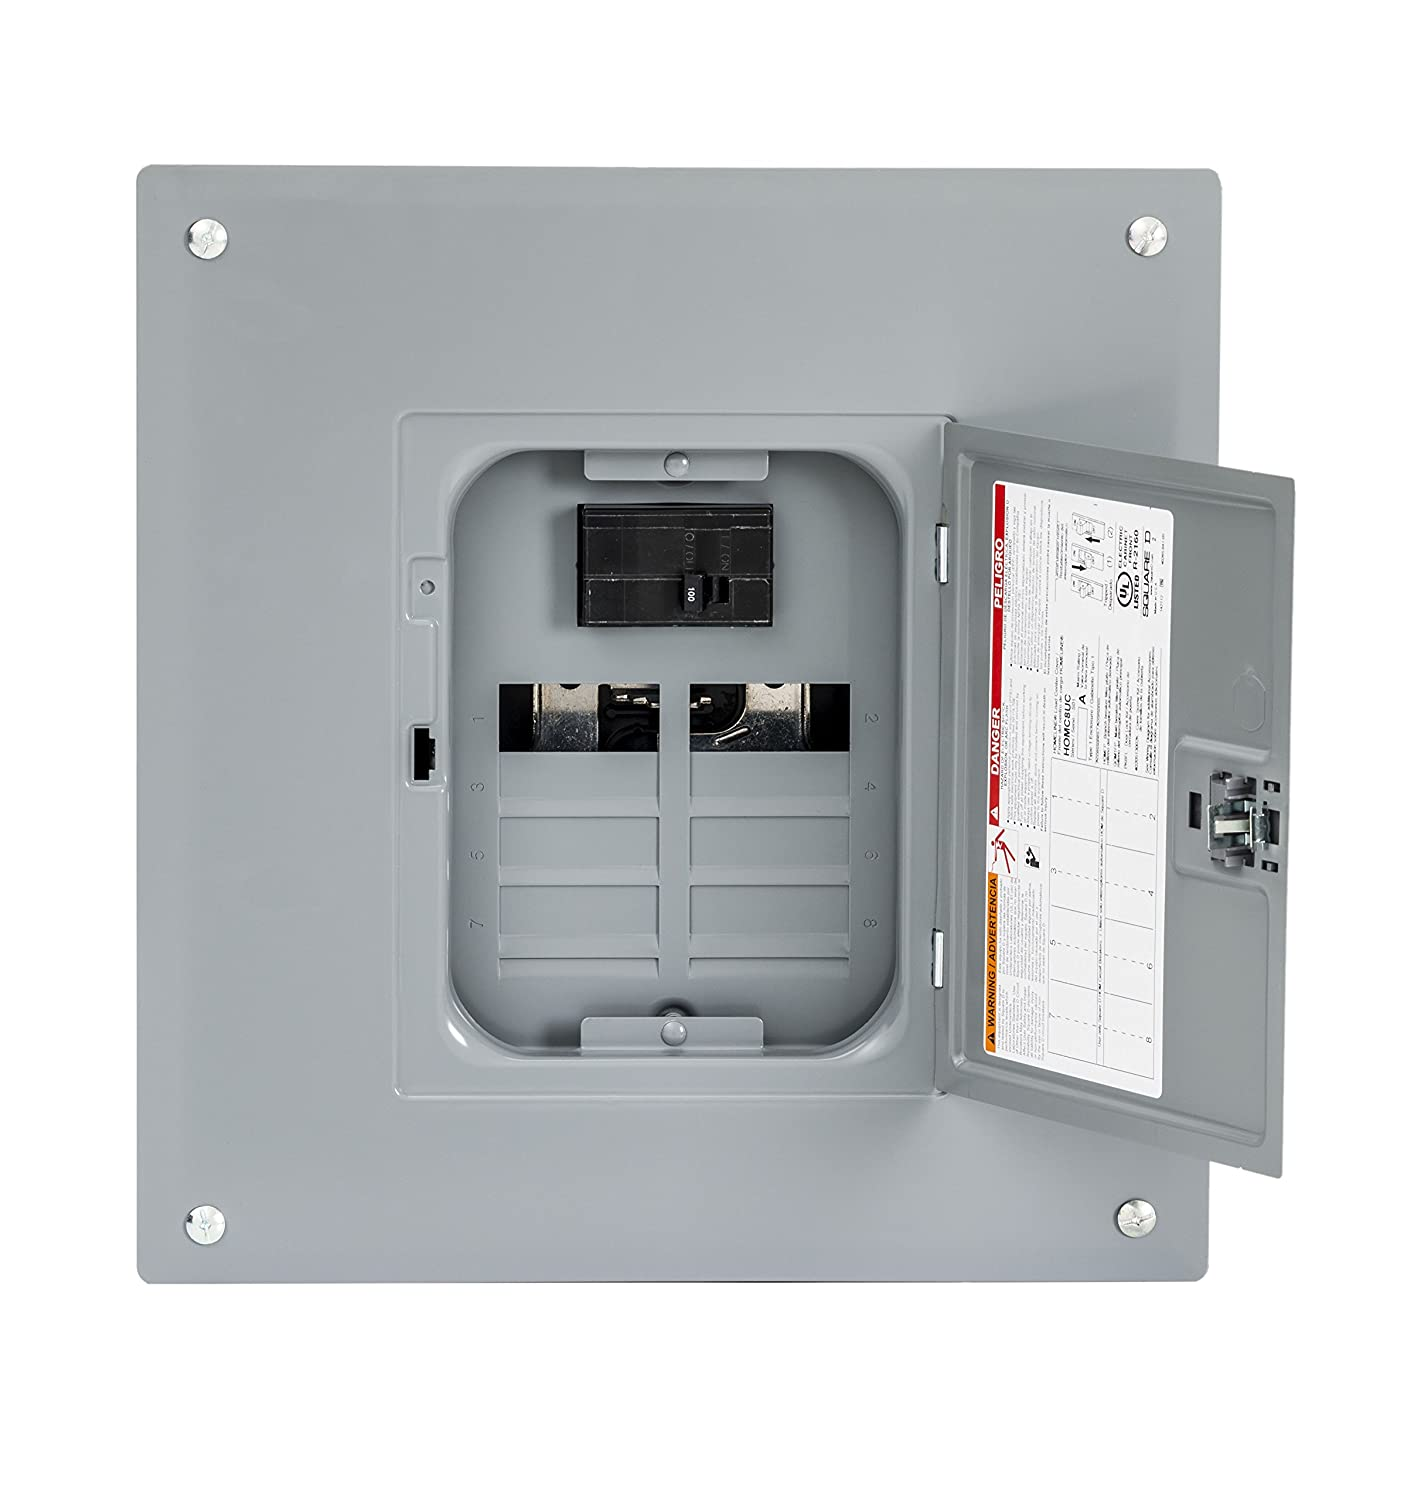 Square D by Schneider Electric HOM816M100PC Homeline 100 Amp 8-Space 16-Circuit Indoor Main Breaker Load Center with Cover (Plug-on Neutral Ready),